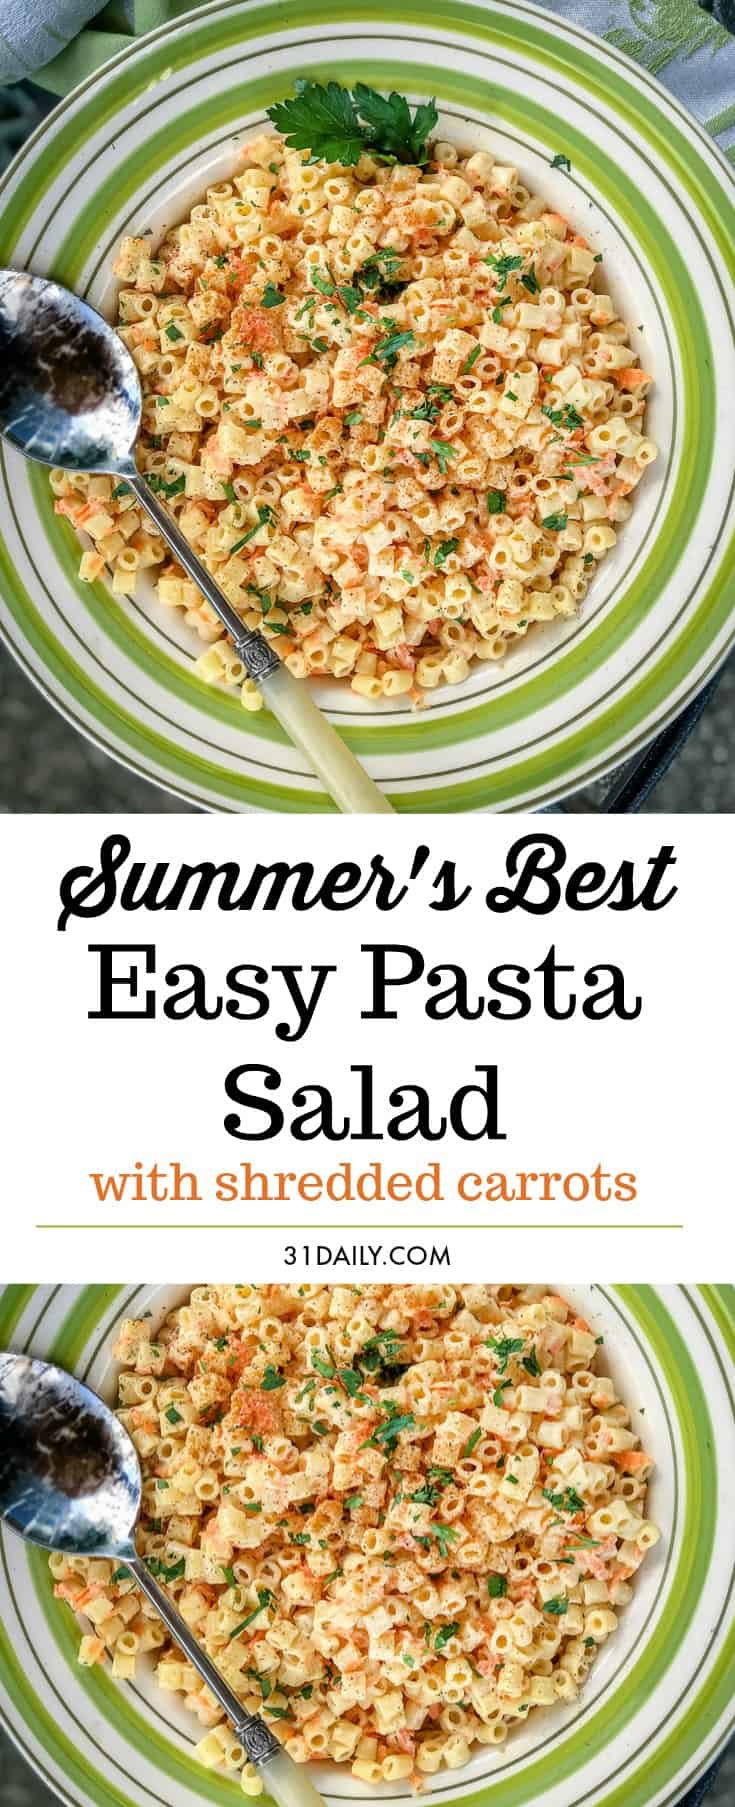 Summer Easy Pasta Salad with Shredded Carrots | 31Daily.com